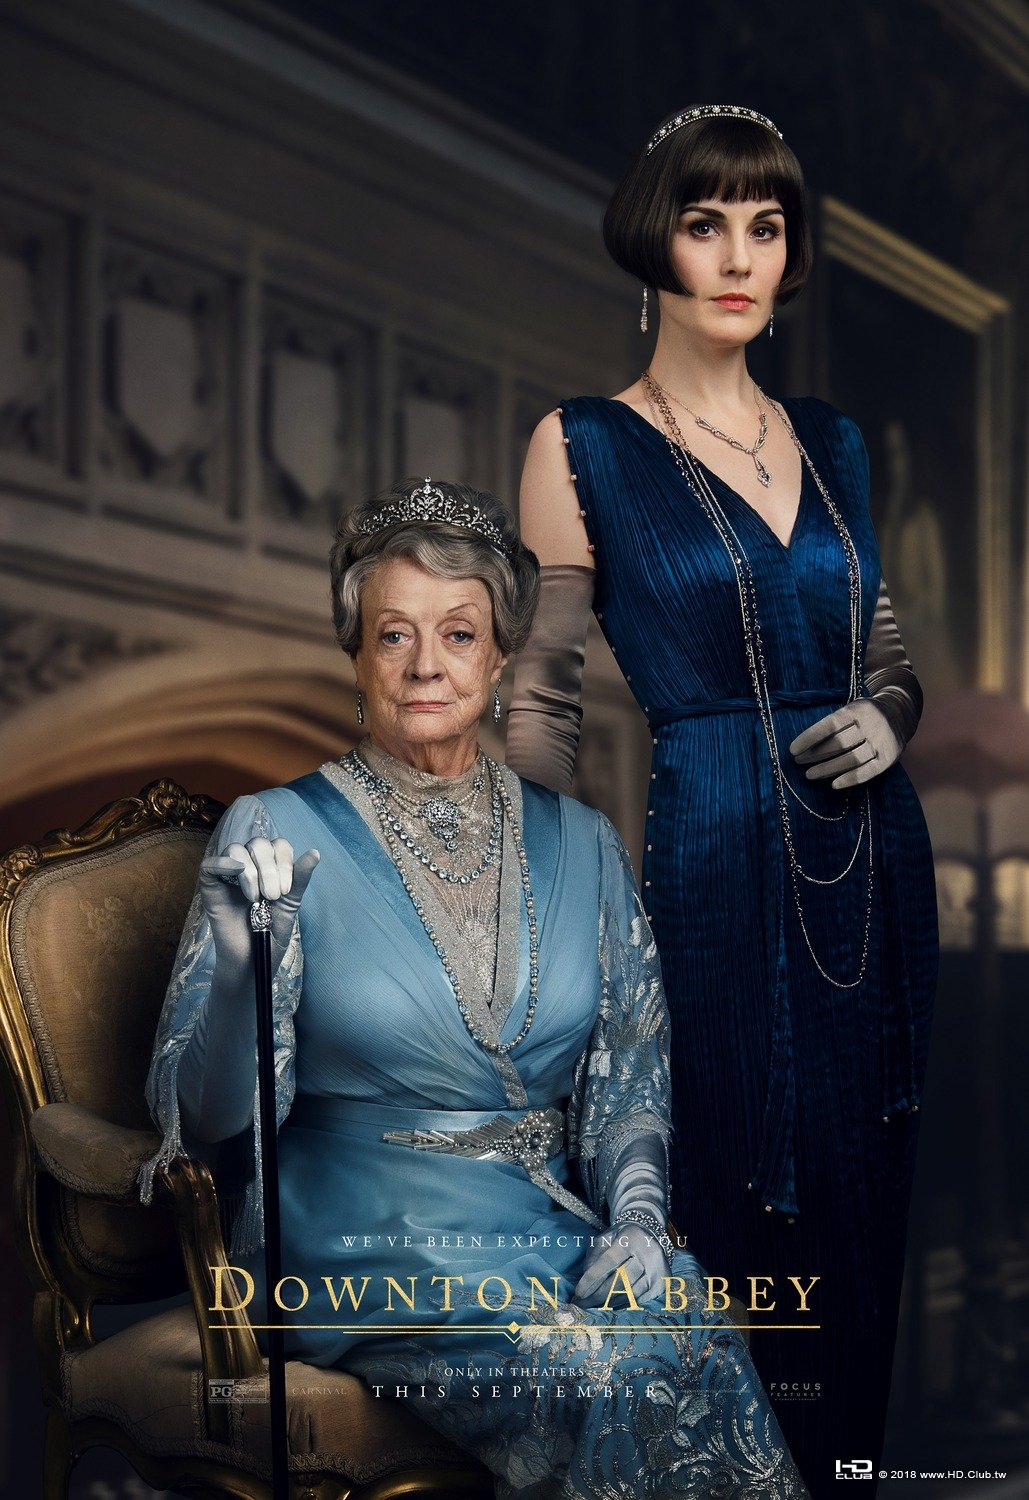 downton_abbey_ver25_xlg.jpg